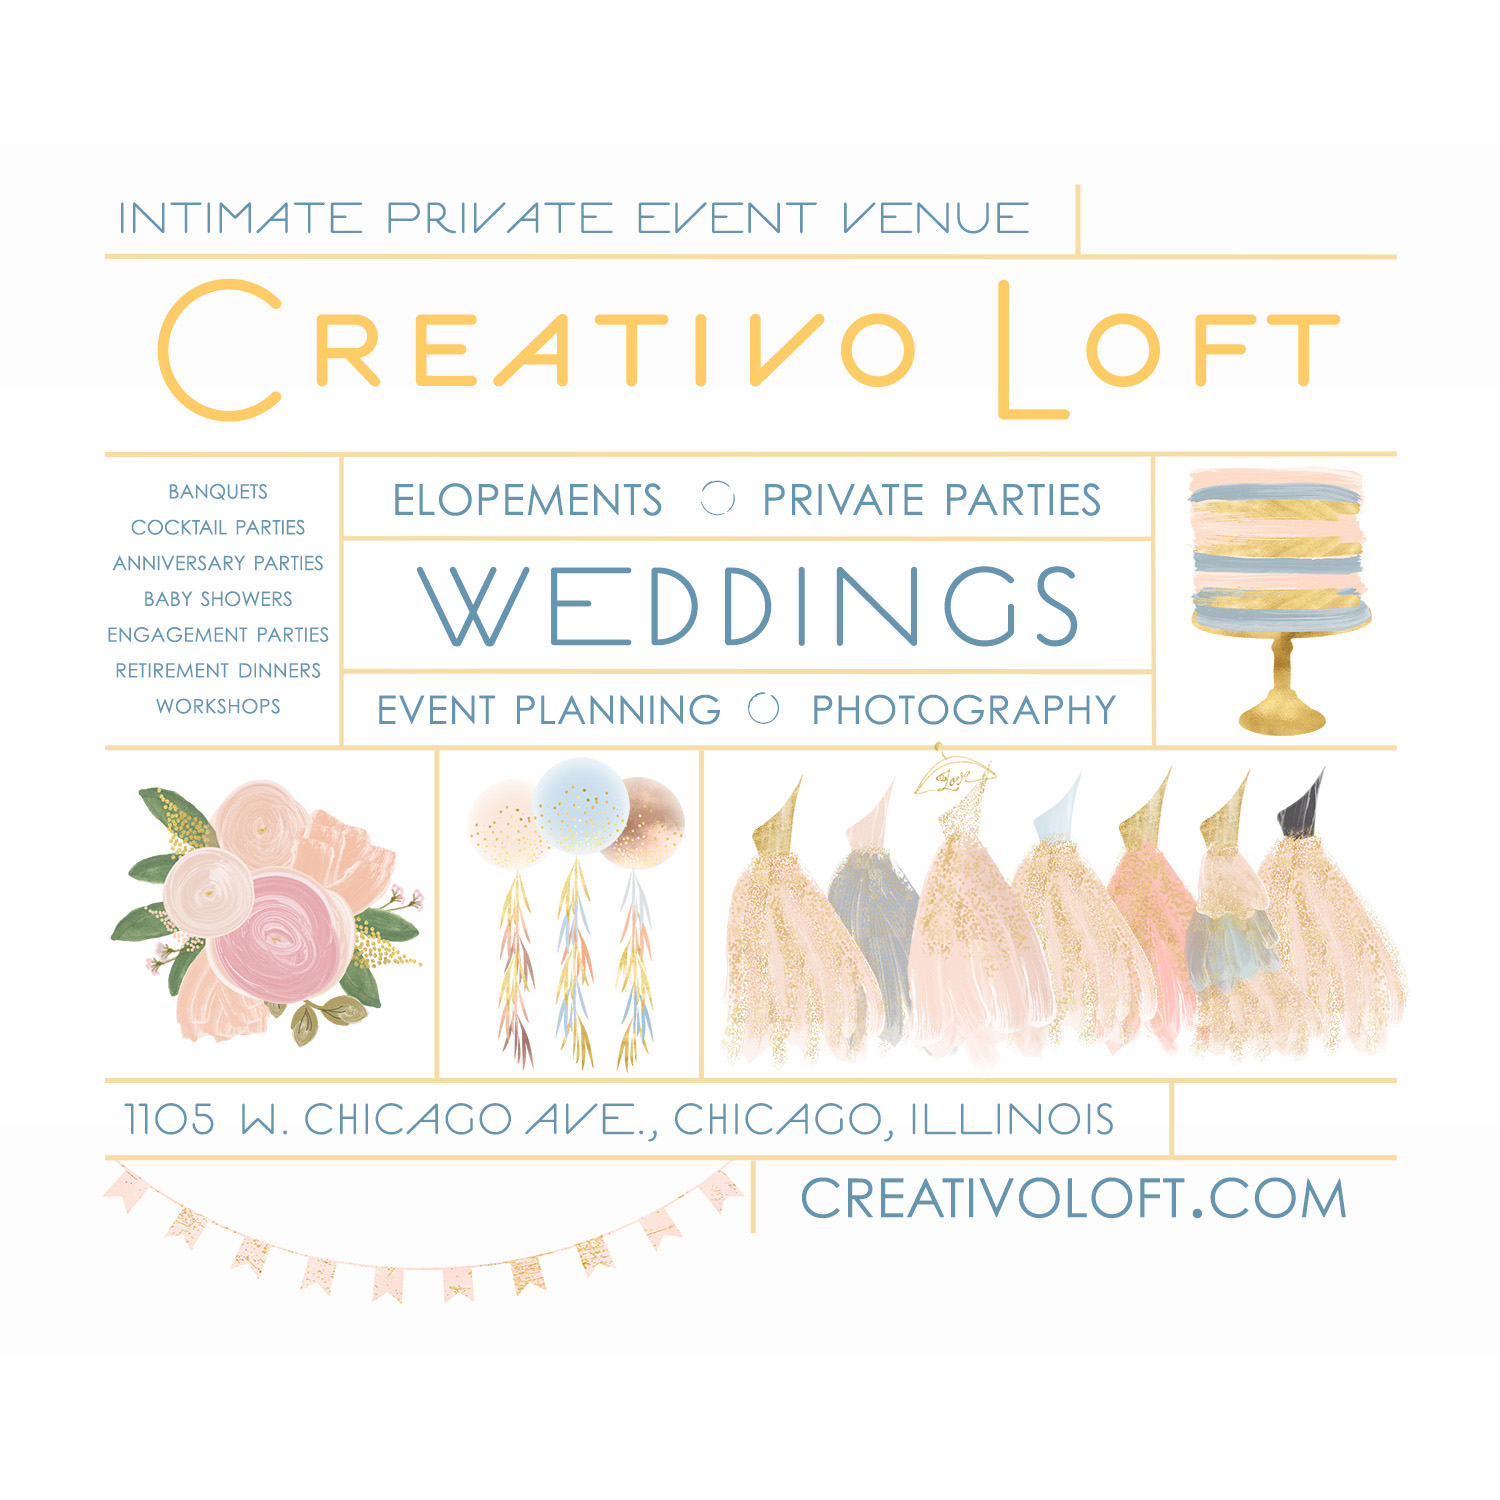 Baby Shower: Elephants & Umbrellas - Creativo Loft